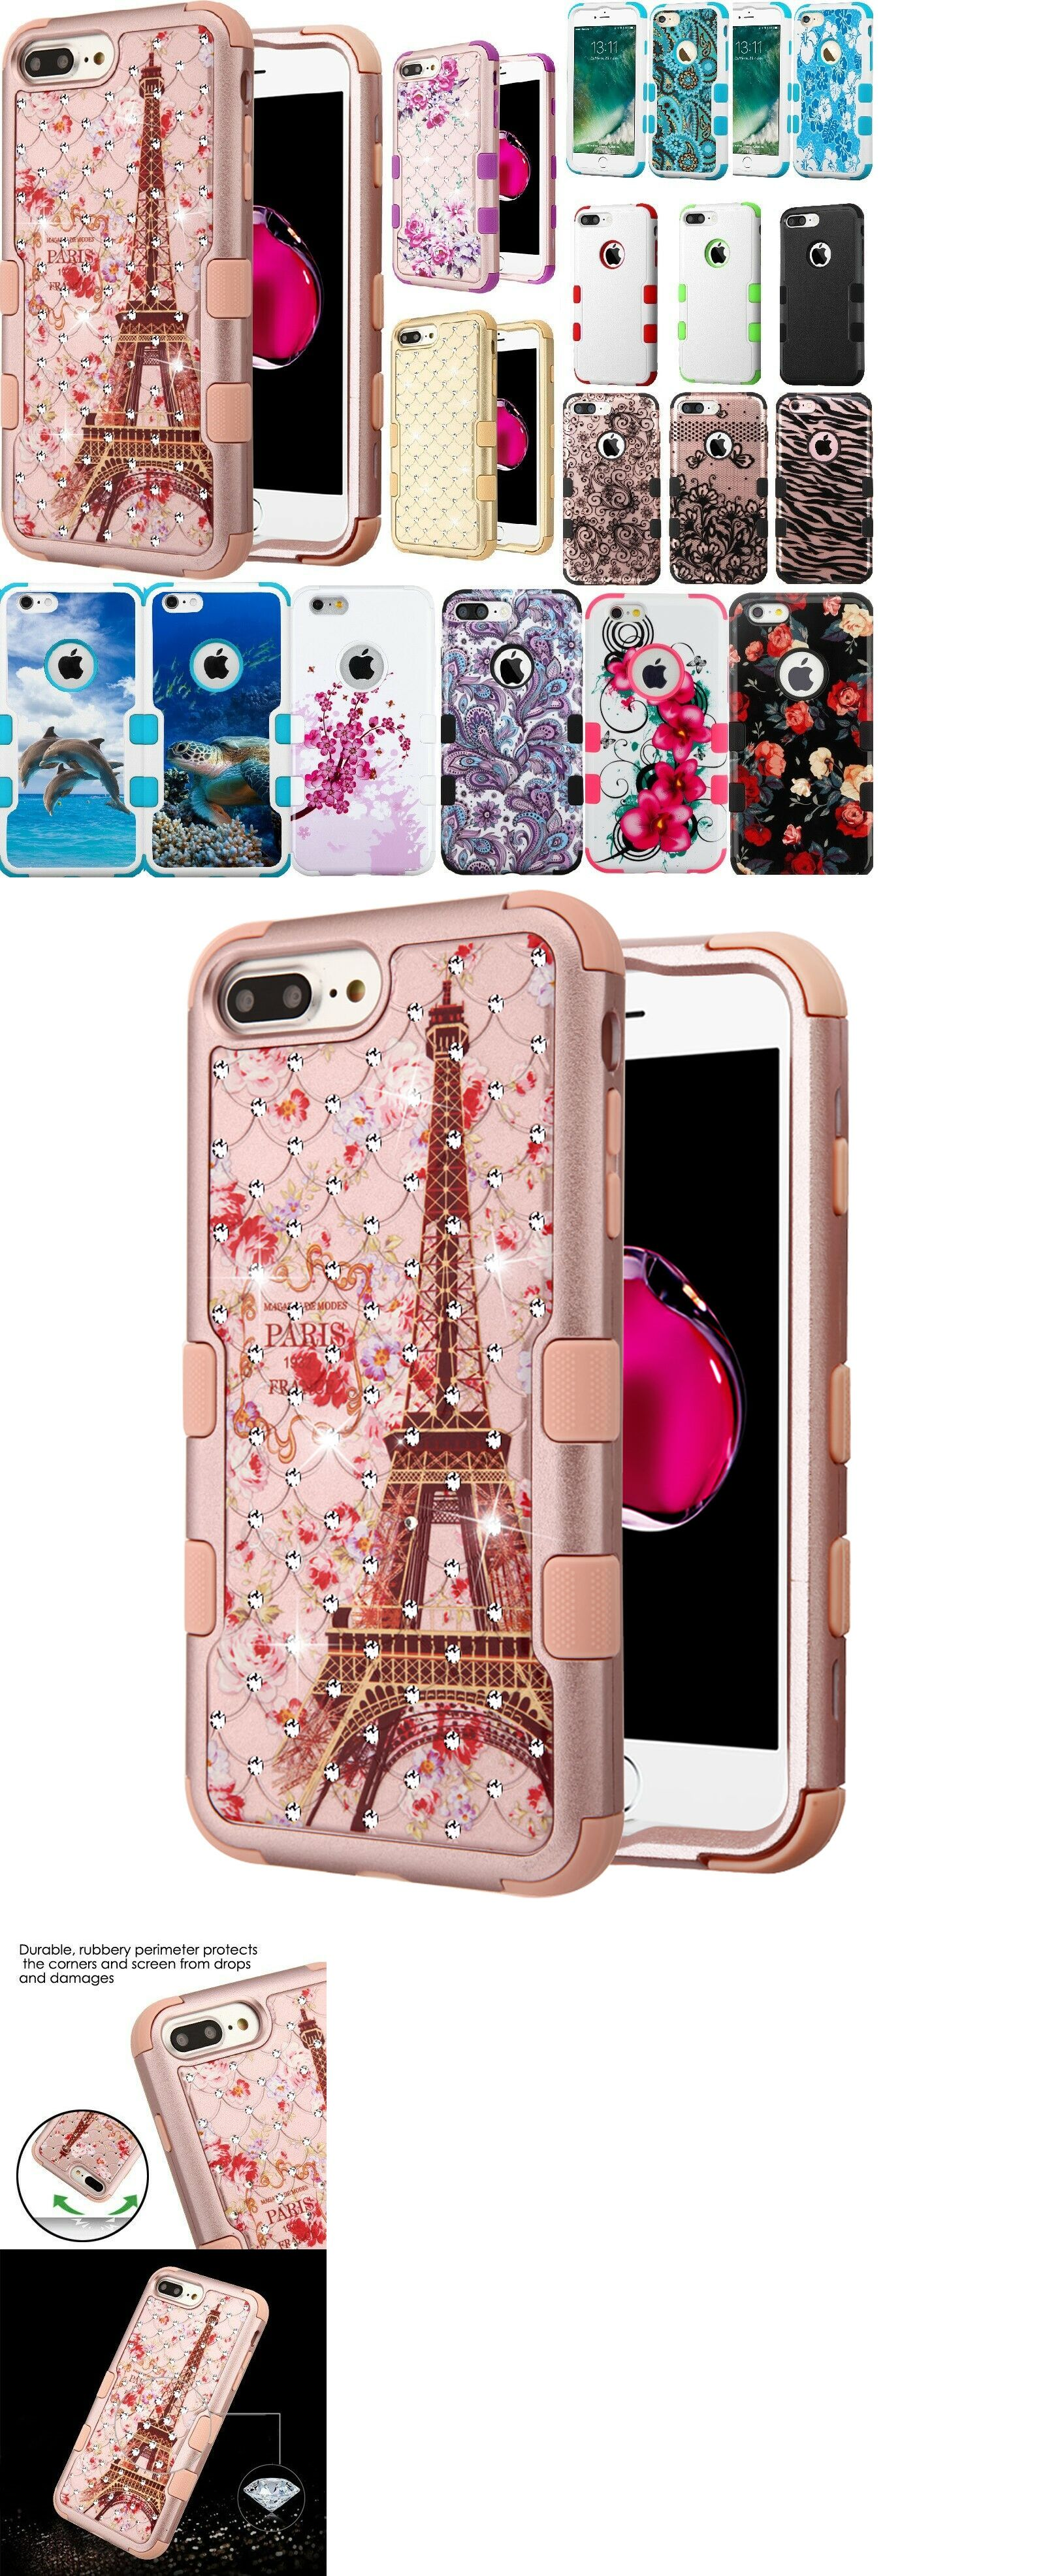 new styles 06c93 90144 Cases Covers and Skins 20349: For Iphone 6 Plus Iphone 6S Plus Case ...